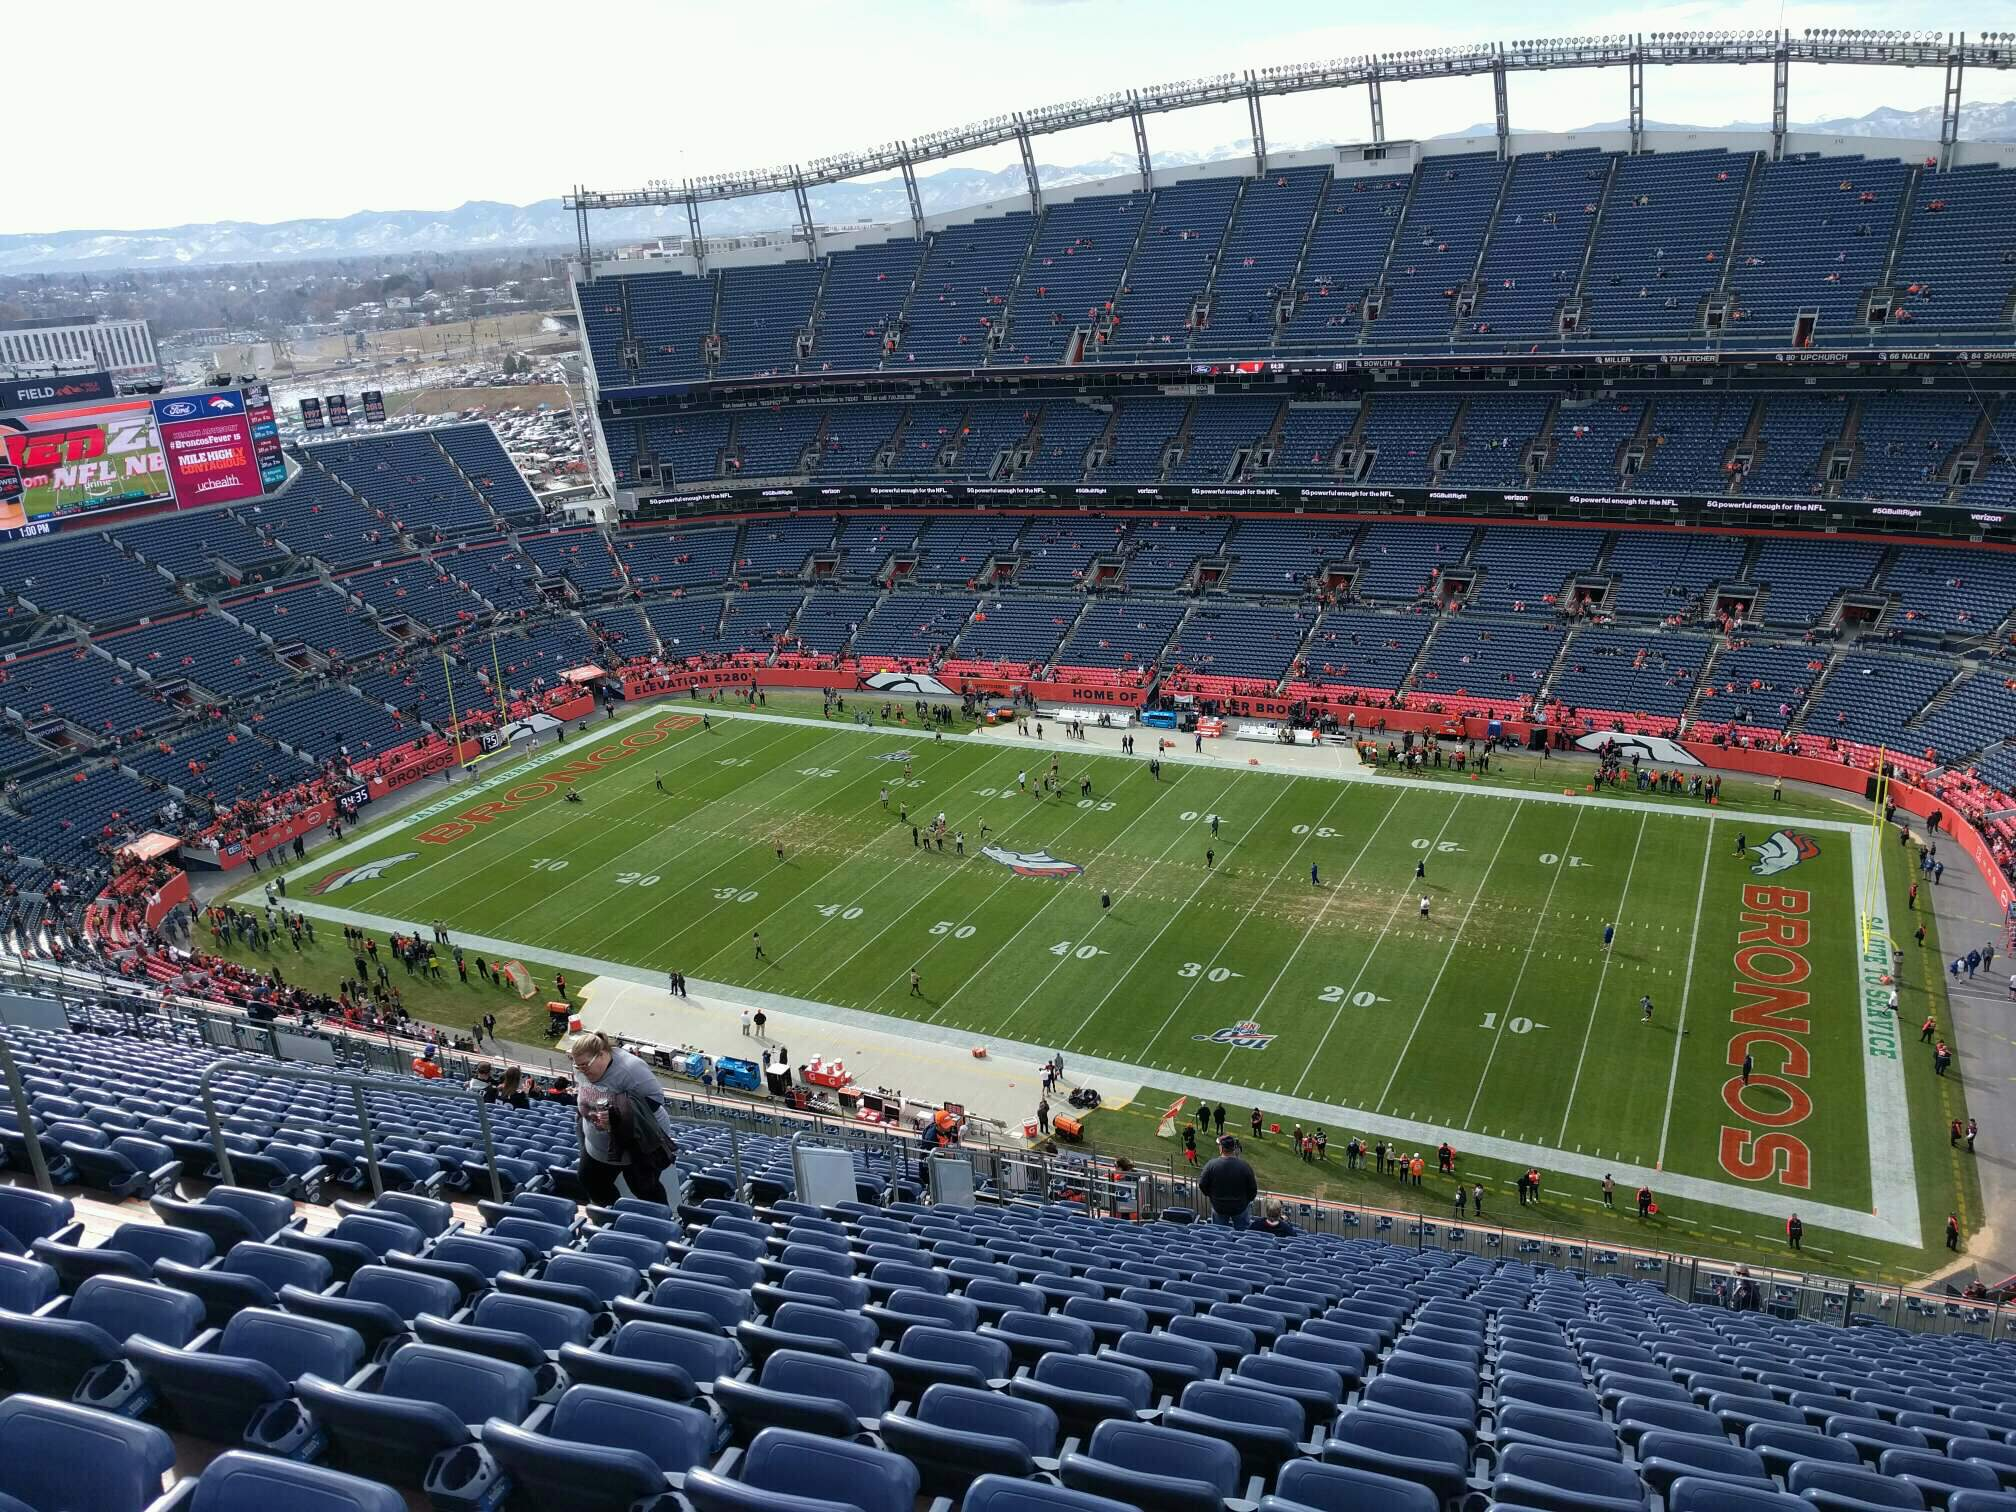 Empower Field at Mile High Stadium Section 530 Row 26 Seat 17